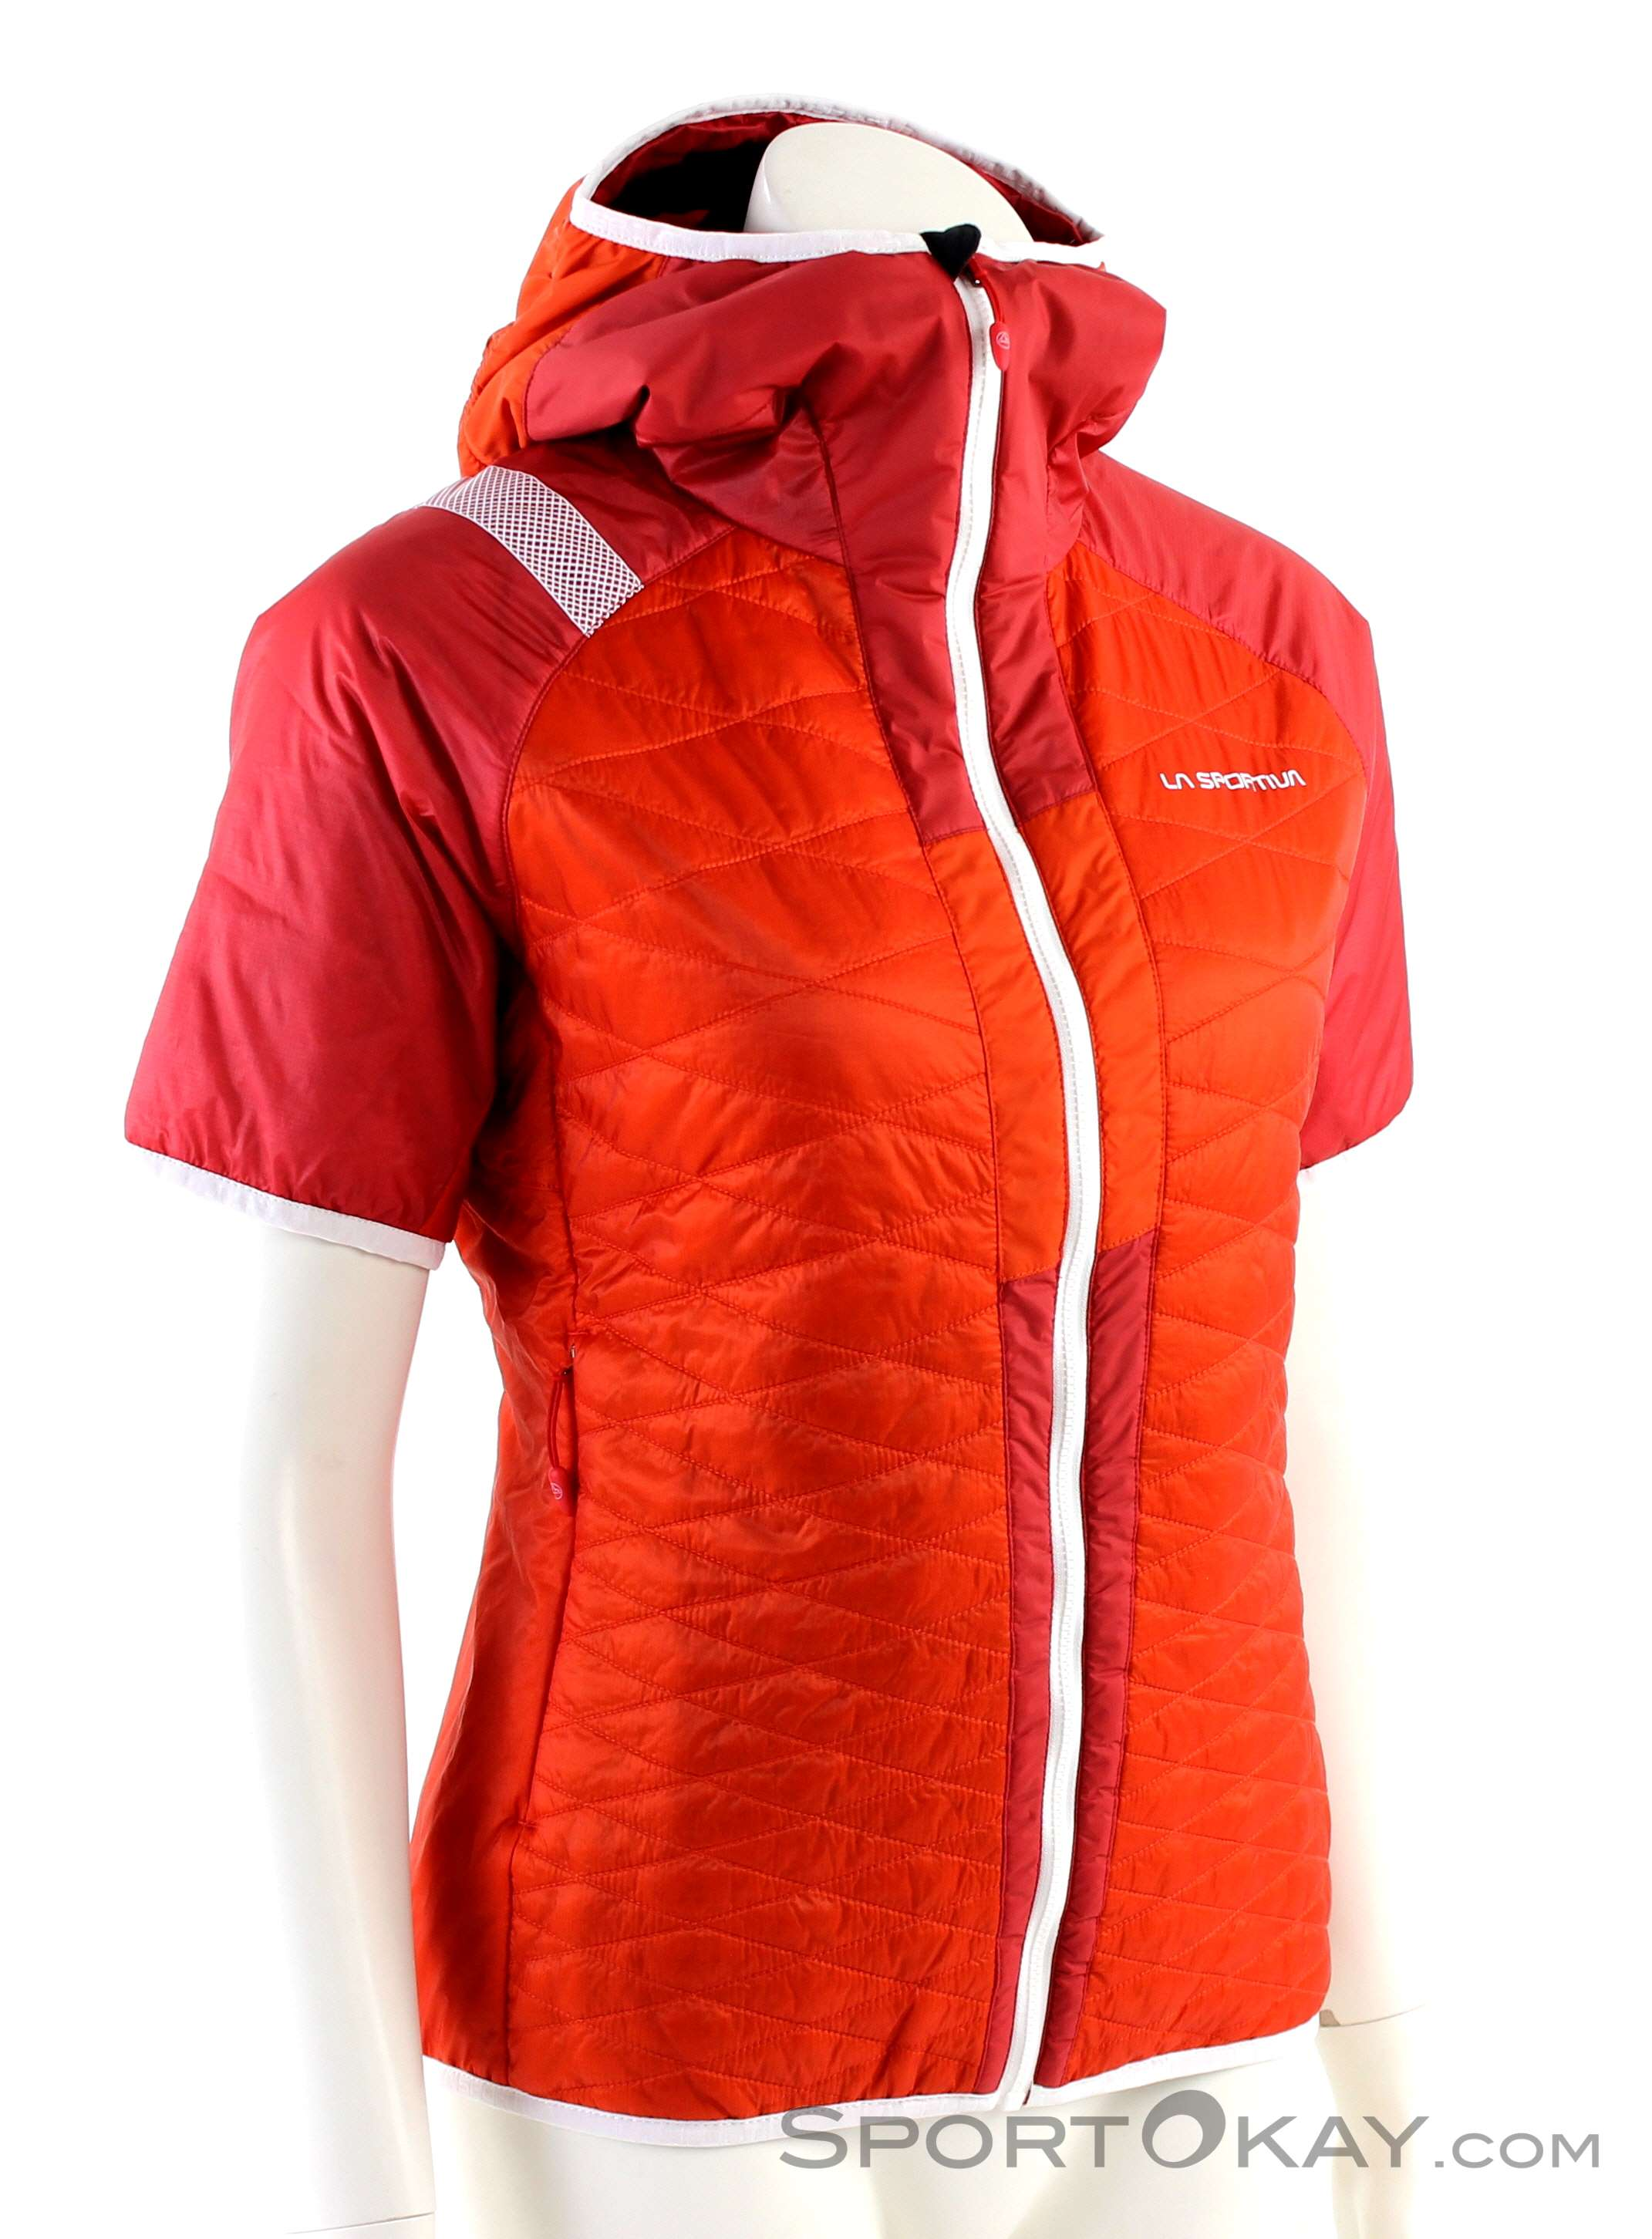 Womens La Sportiva Firefly Short Jacket Outdoor Sleeve H9WE2YDI